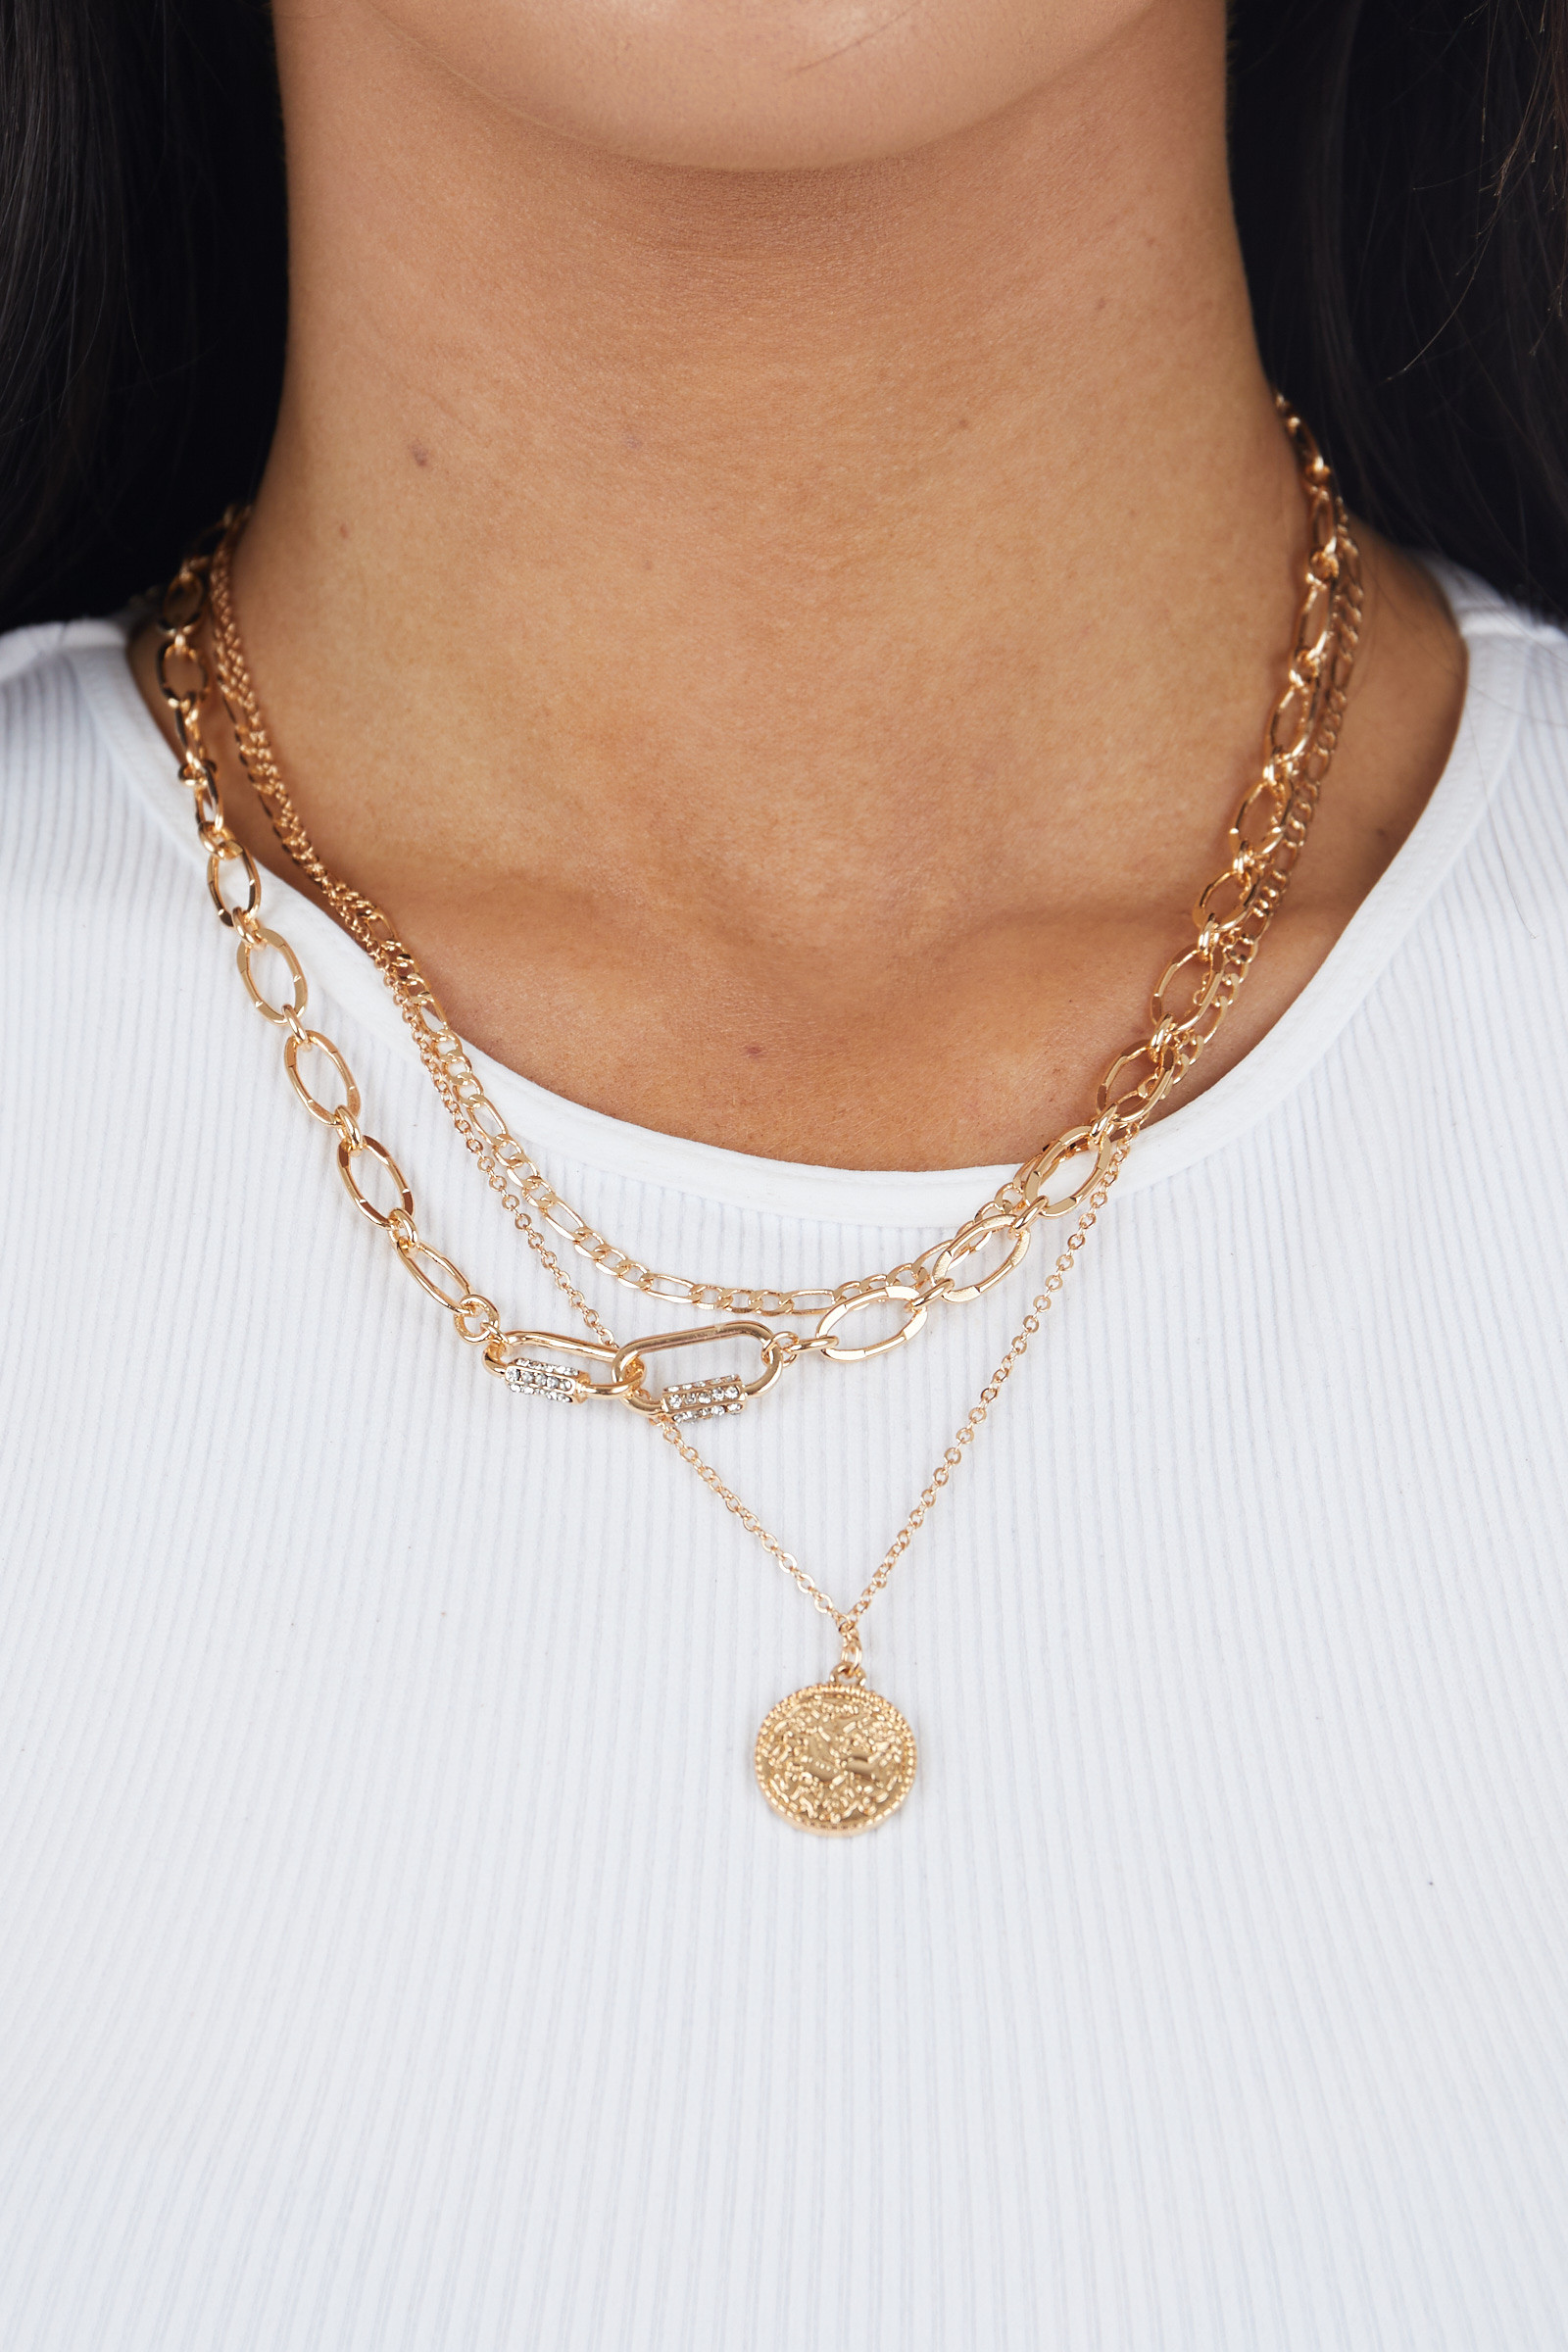 Gold Triple Chain Necklace with Coin Charm and Rhinestones